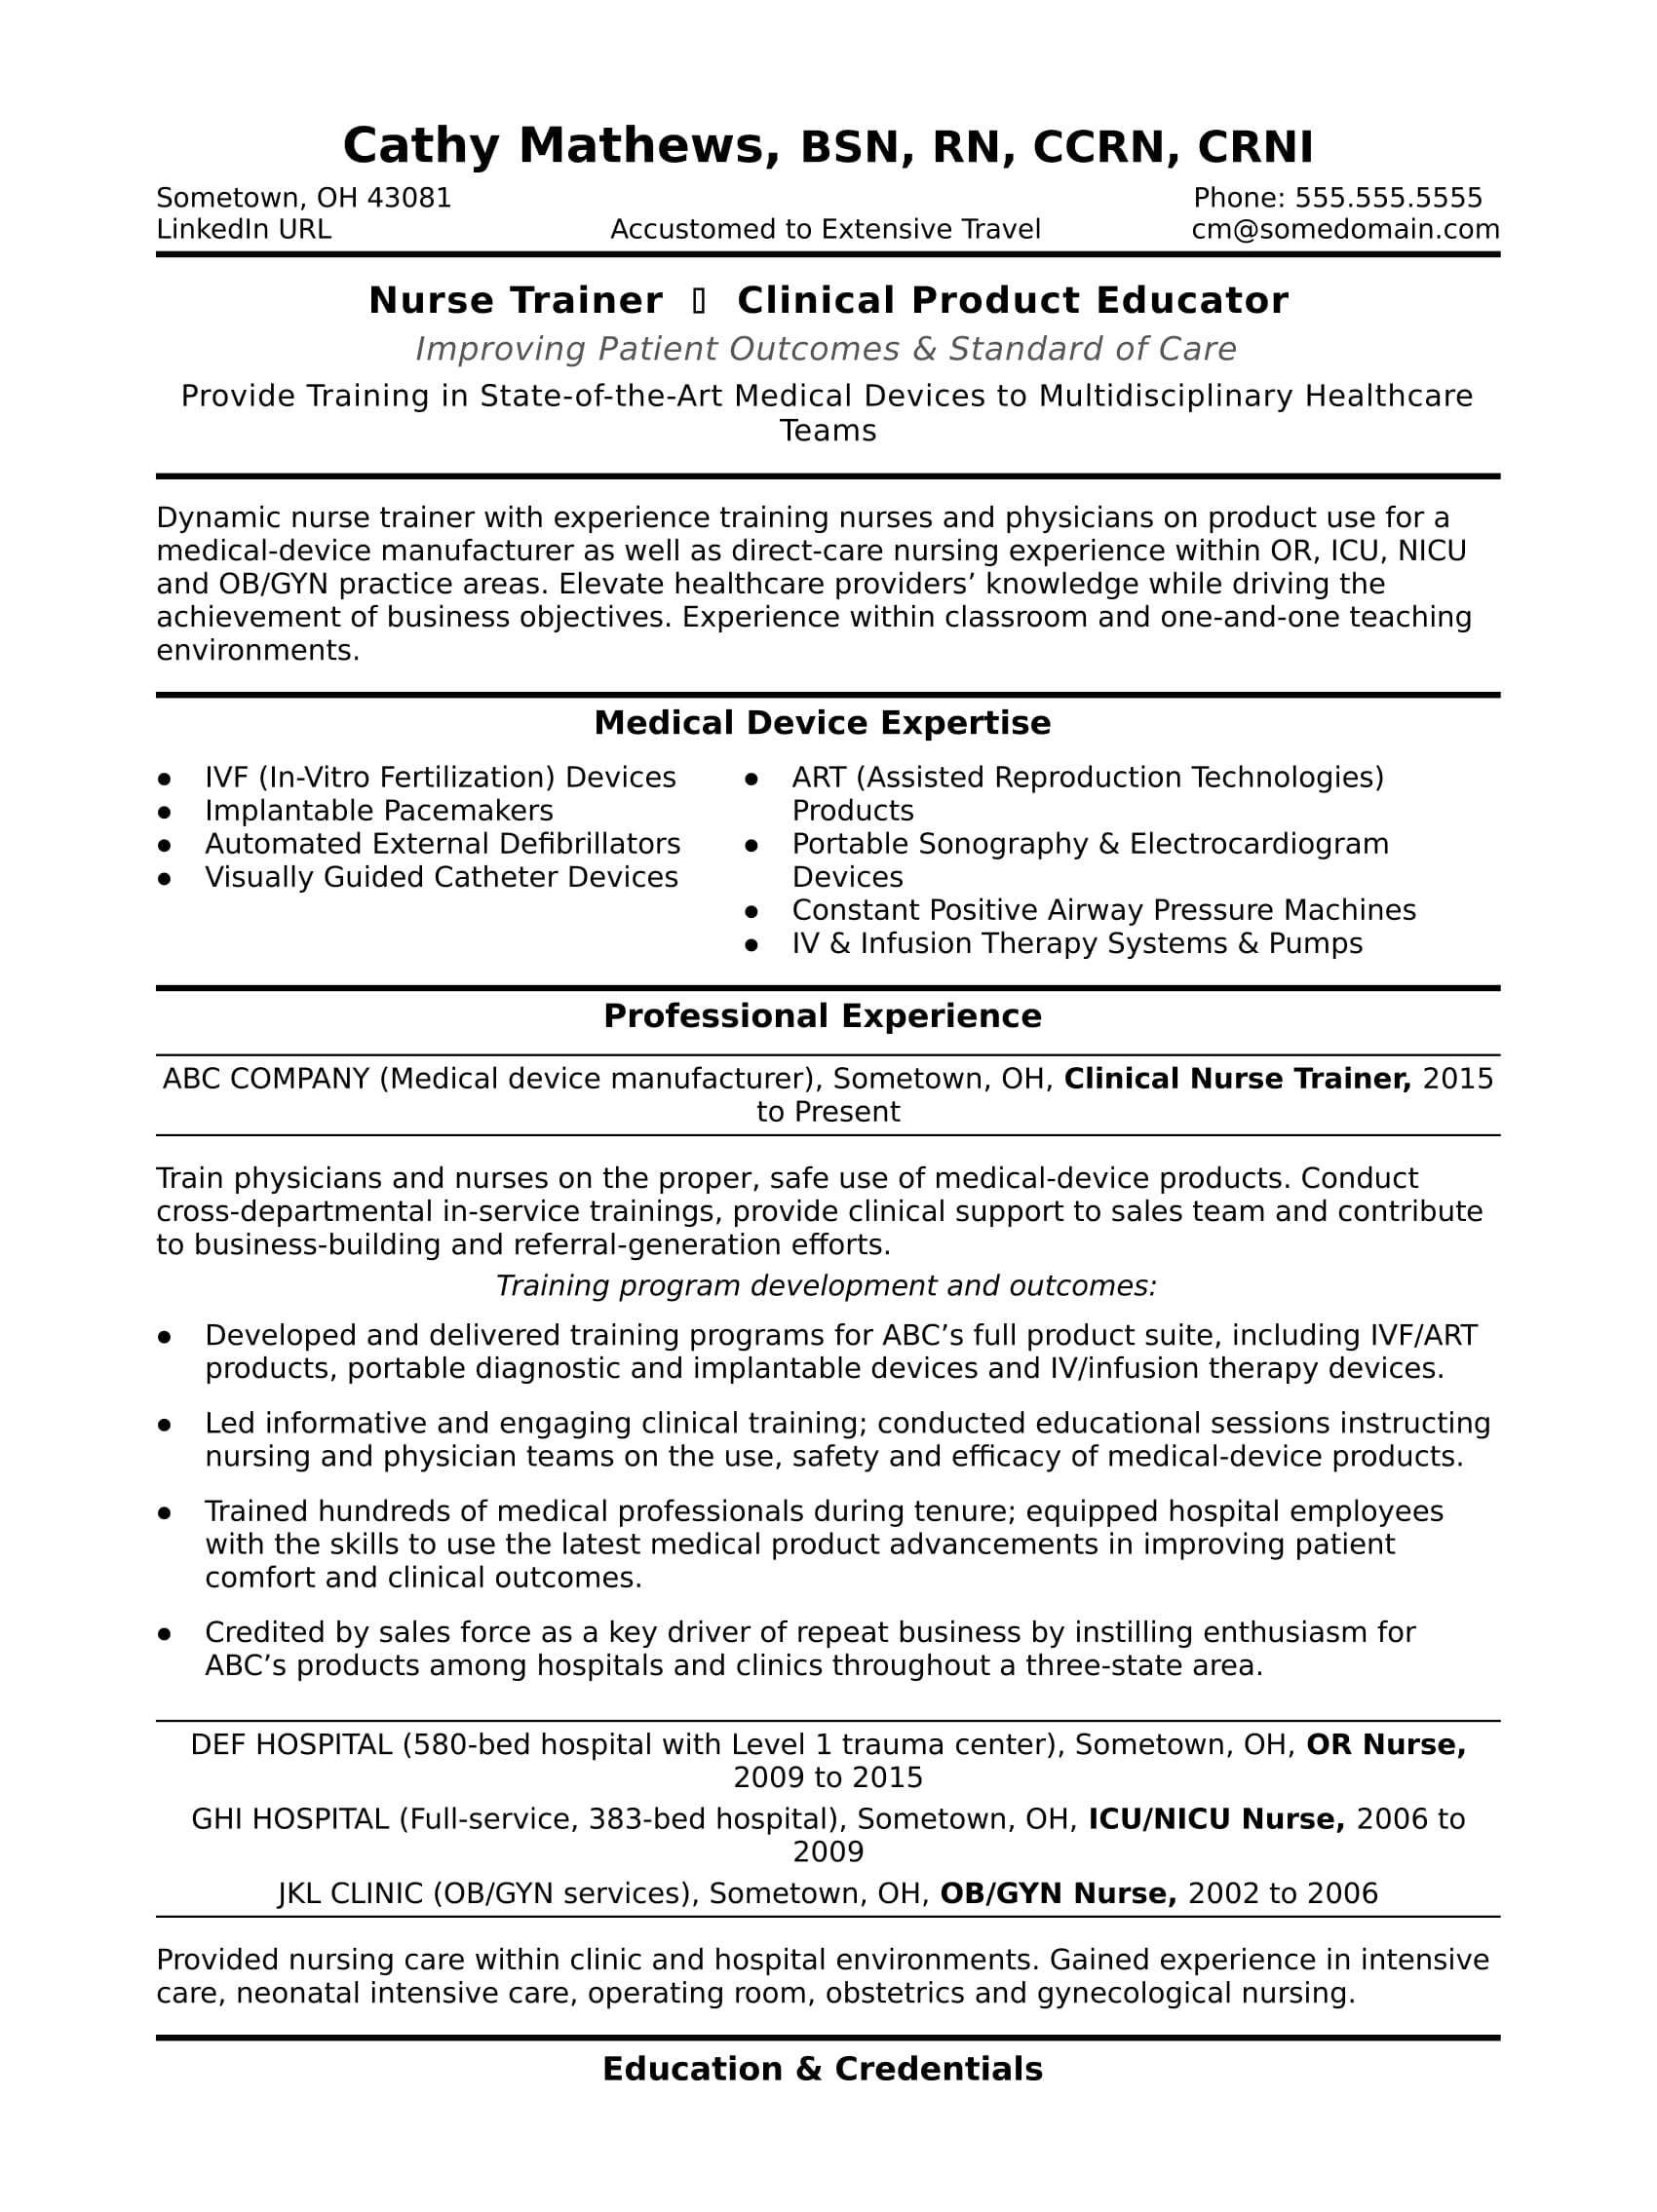 nurse trainer resume sample monster objective for healthcare examples writing high Resume Objective For Healthcare Resume Examples